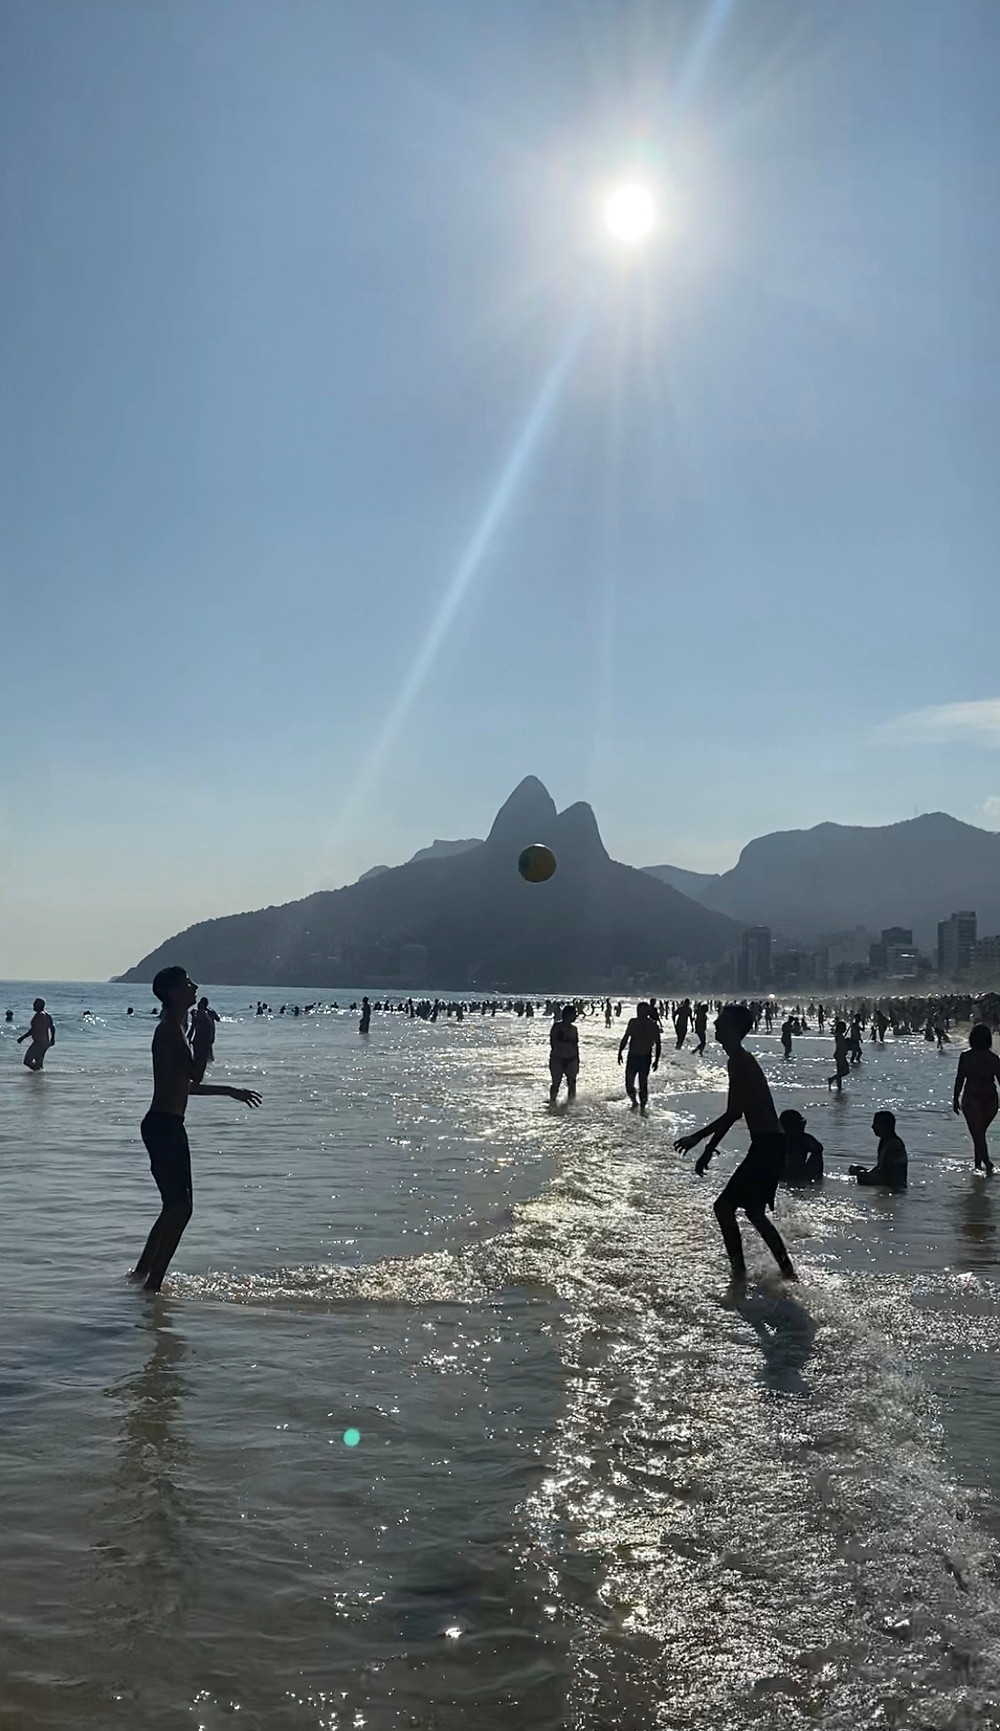 Locals playing in the water at Copacabana Beach